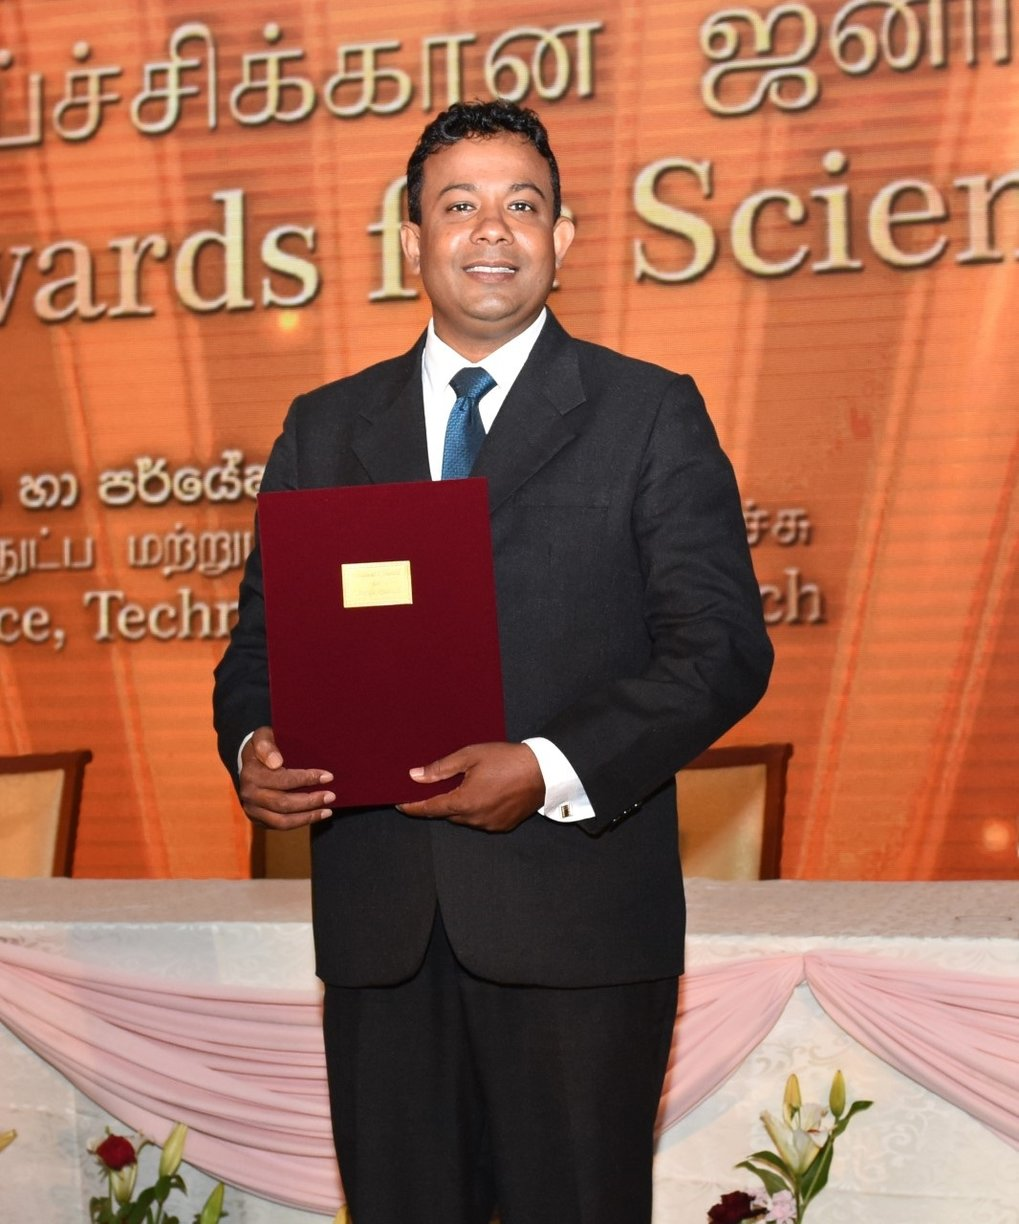 Oshan Wedage, a PhD researcher at the Department of Archaeology, Max Planck Institute for the Science of Human History, has received one of the most prestigious scientific awards in his home country, Sri Lanka.